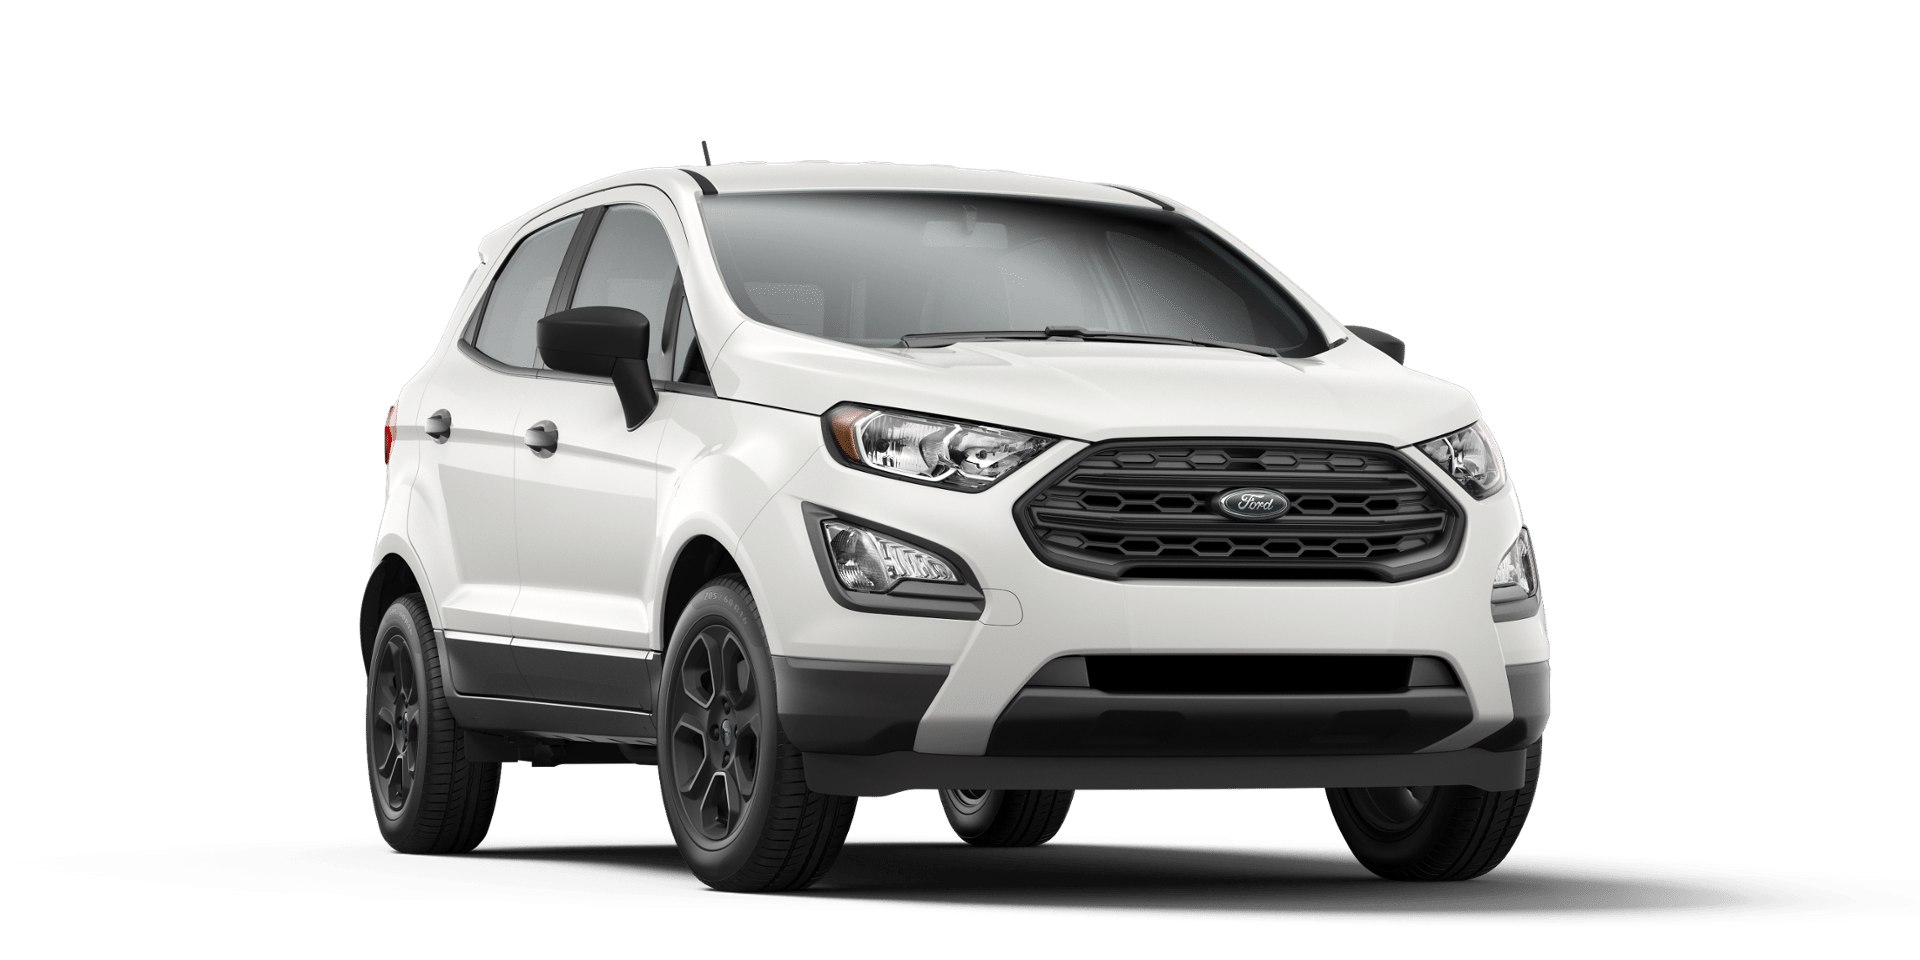 Image Result For Ford Ecosport White